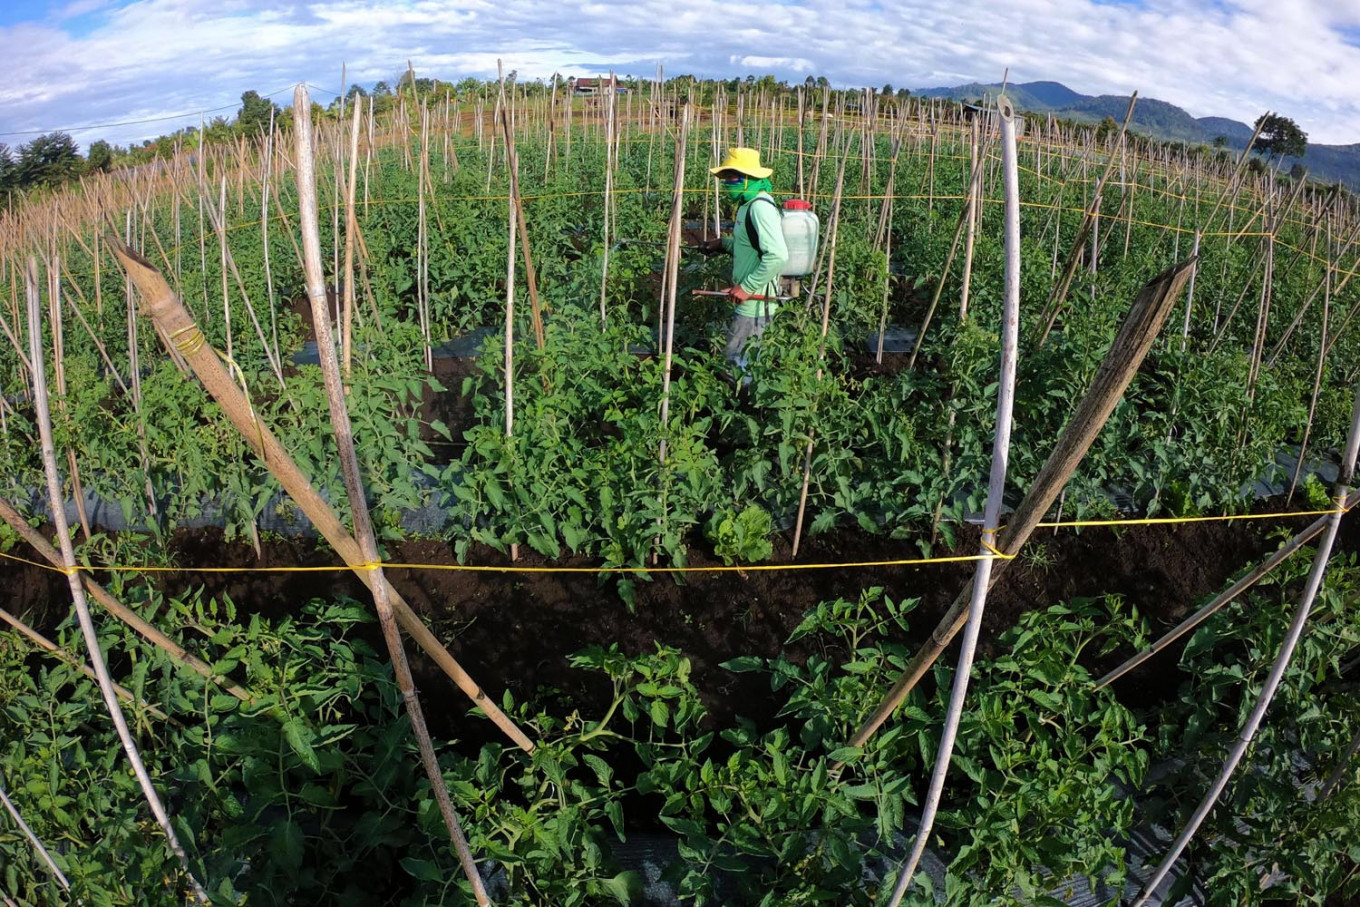 Intensive farming heightens pandemic risk: Study